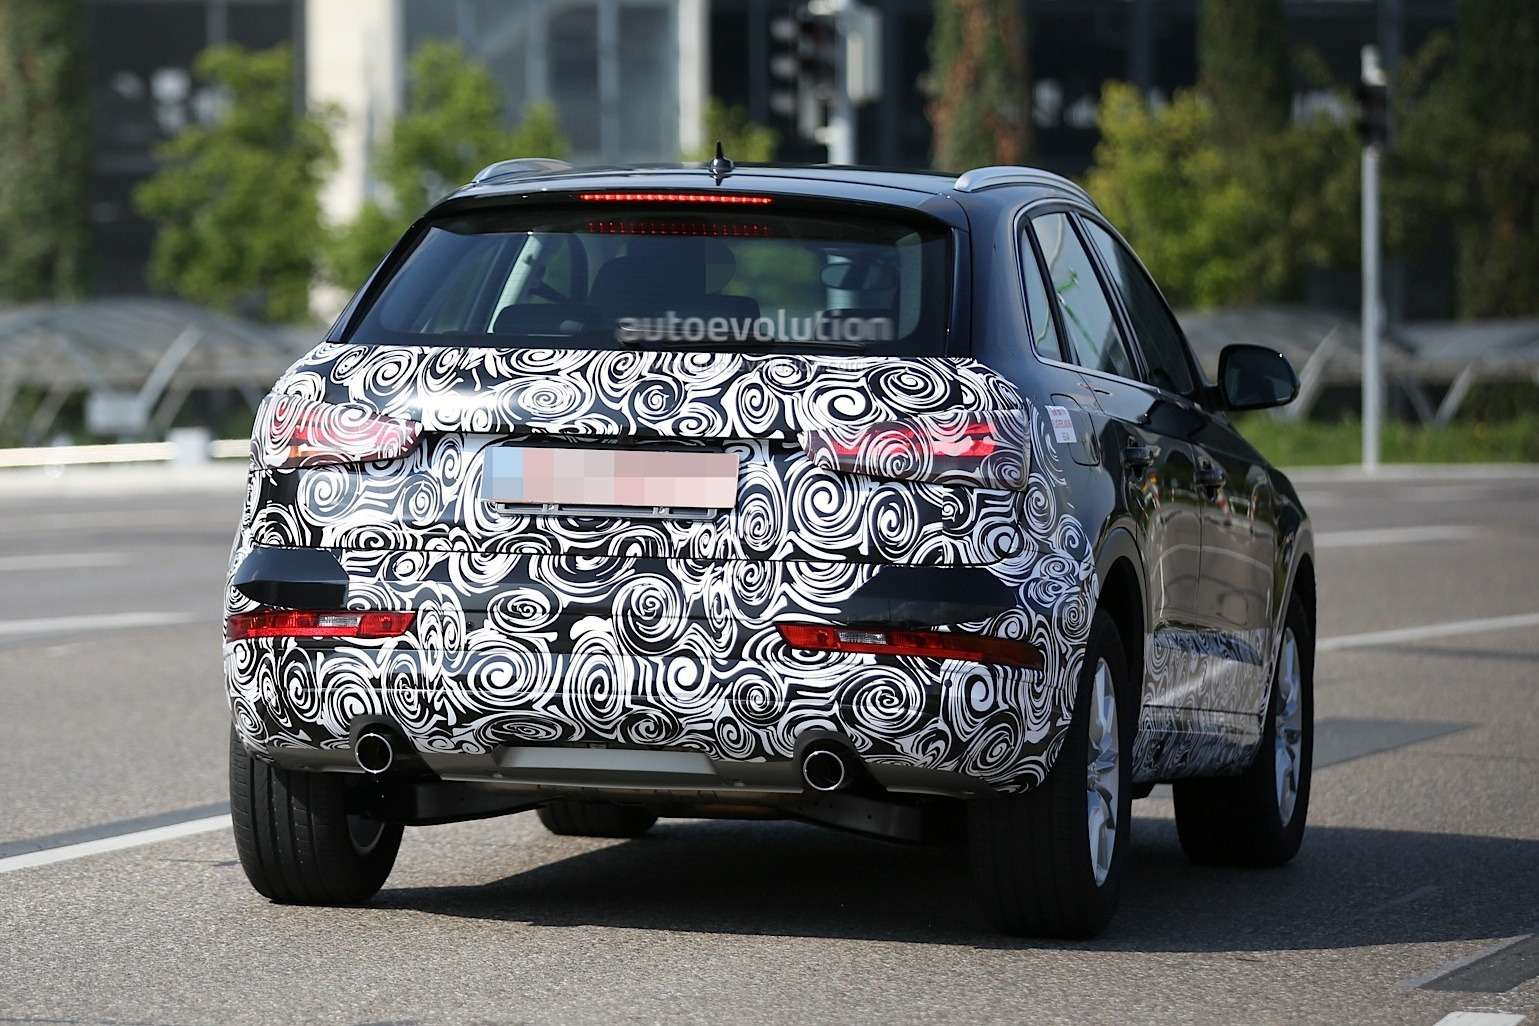 2016-audi-rs-q3-facelift-joins-q3-during-testing-session_3